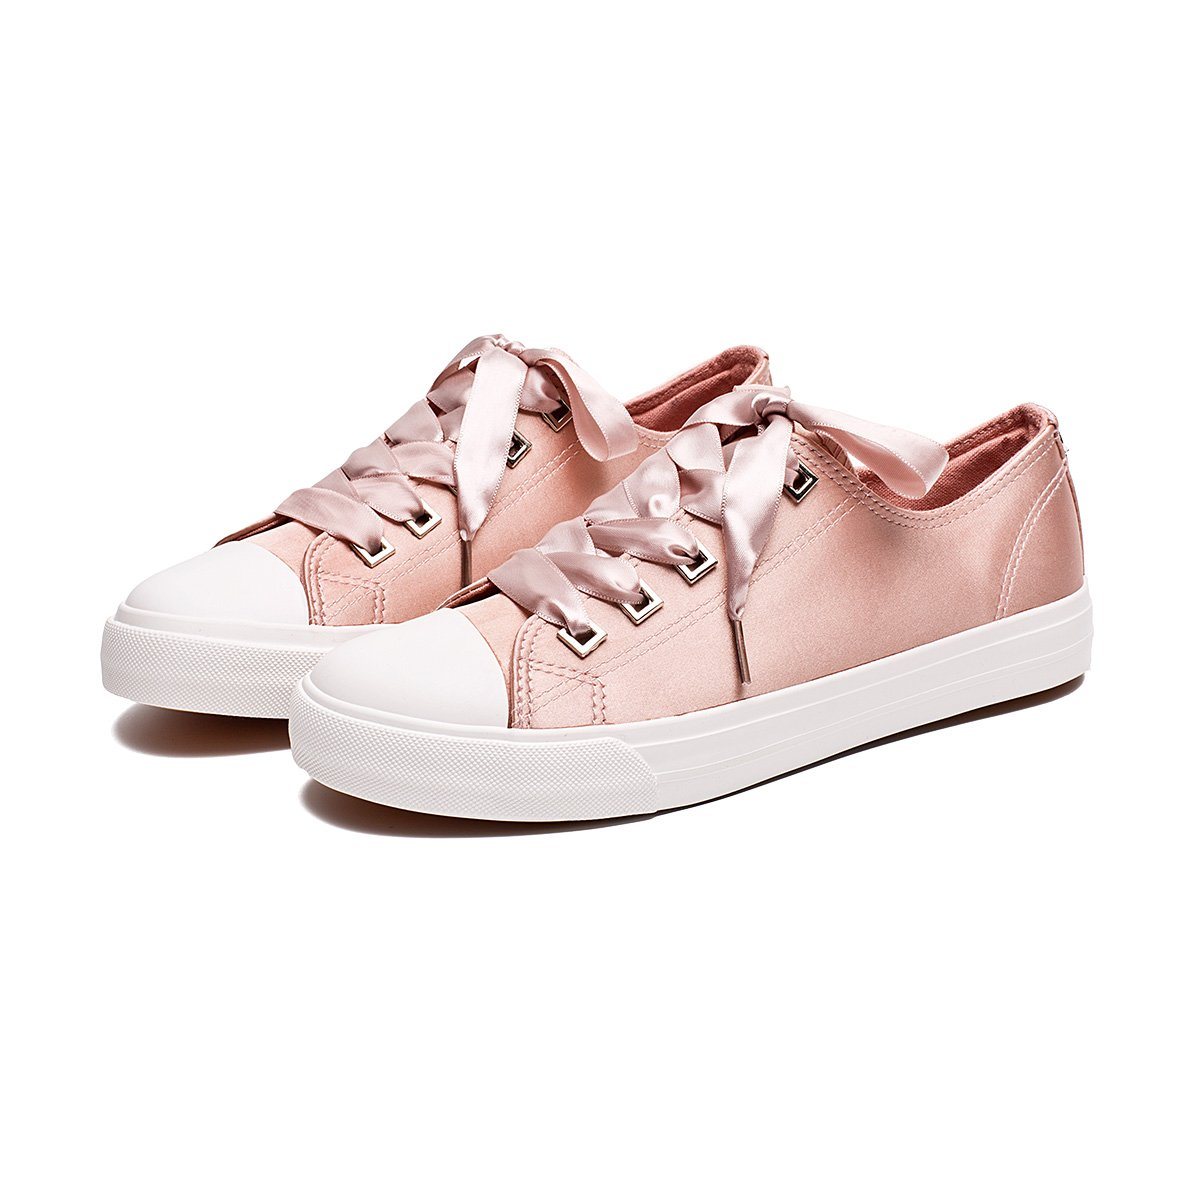 ZGR Womens Fashion Canvas Sneaker Low Cut Lace UPS Casual Shoes Pink Size US8